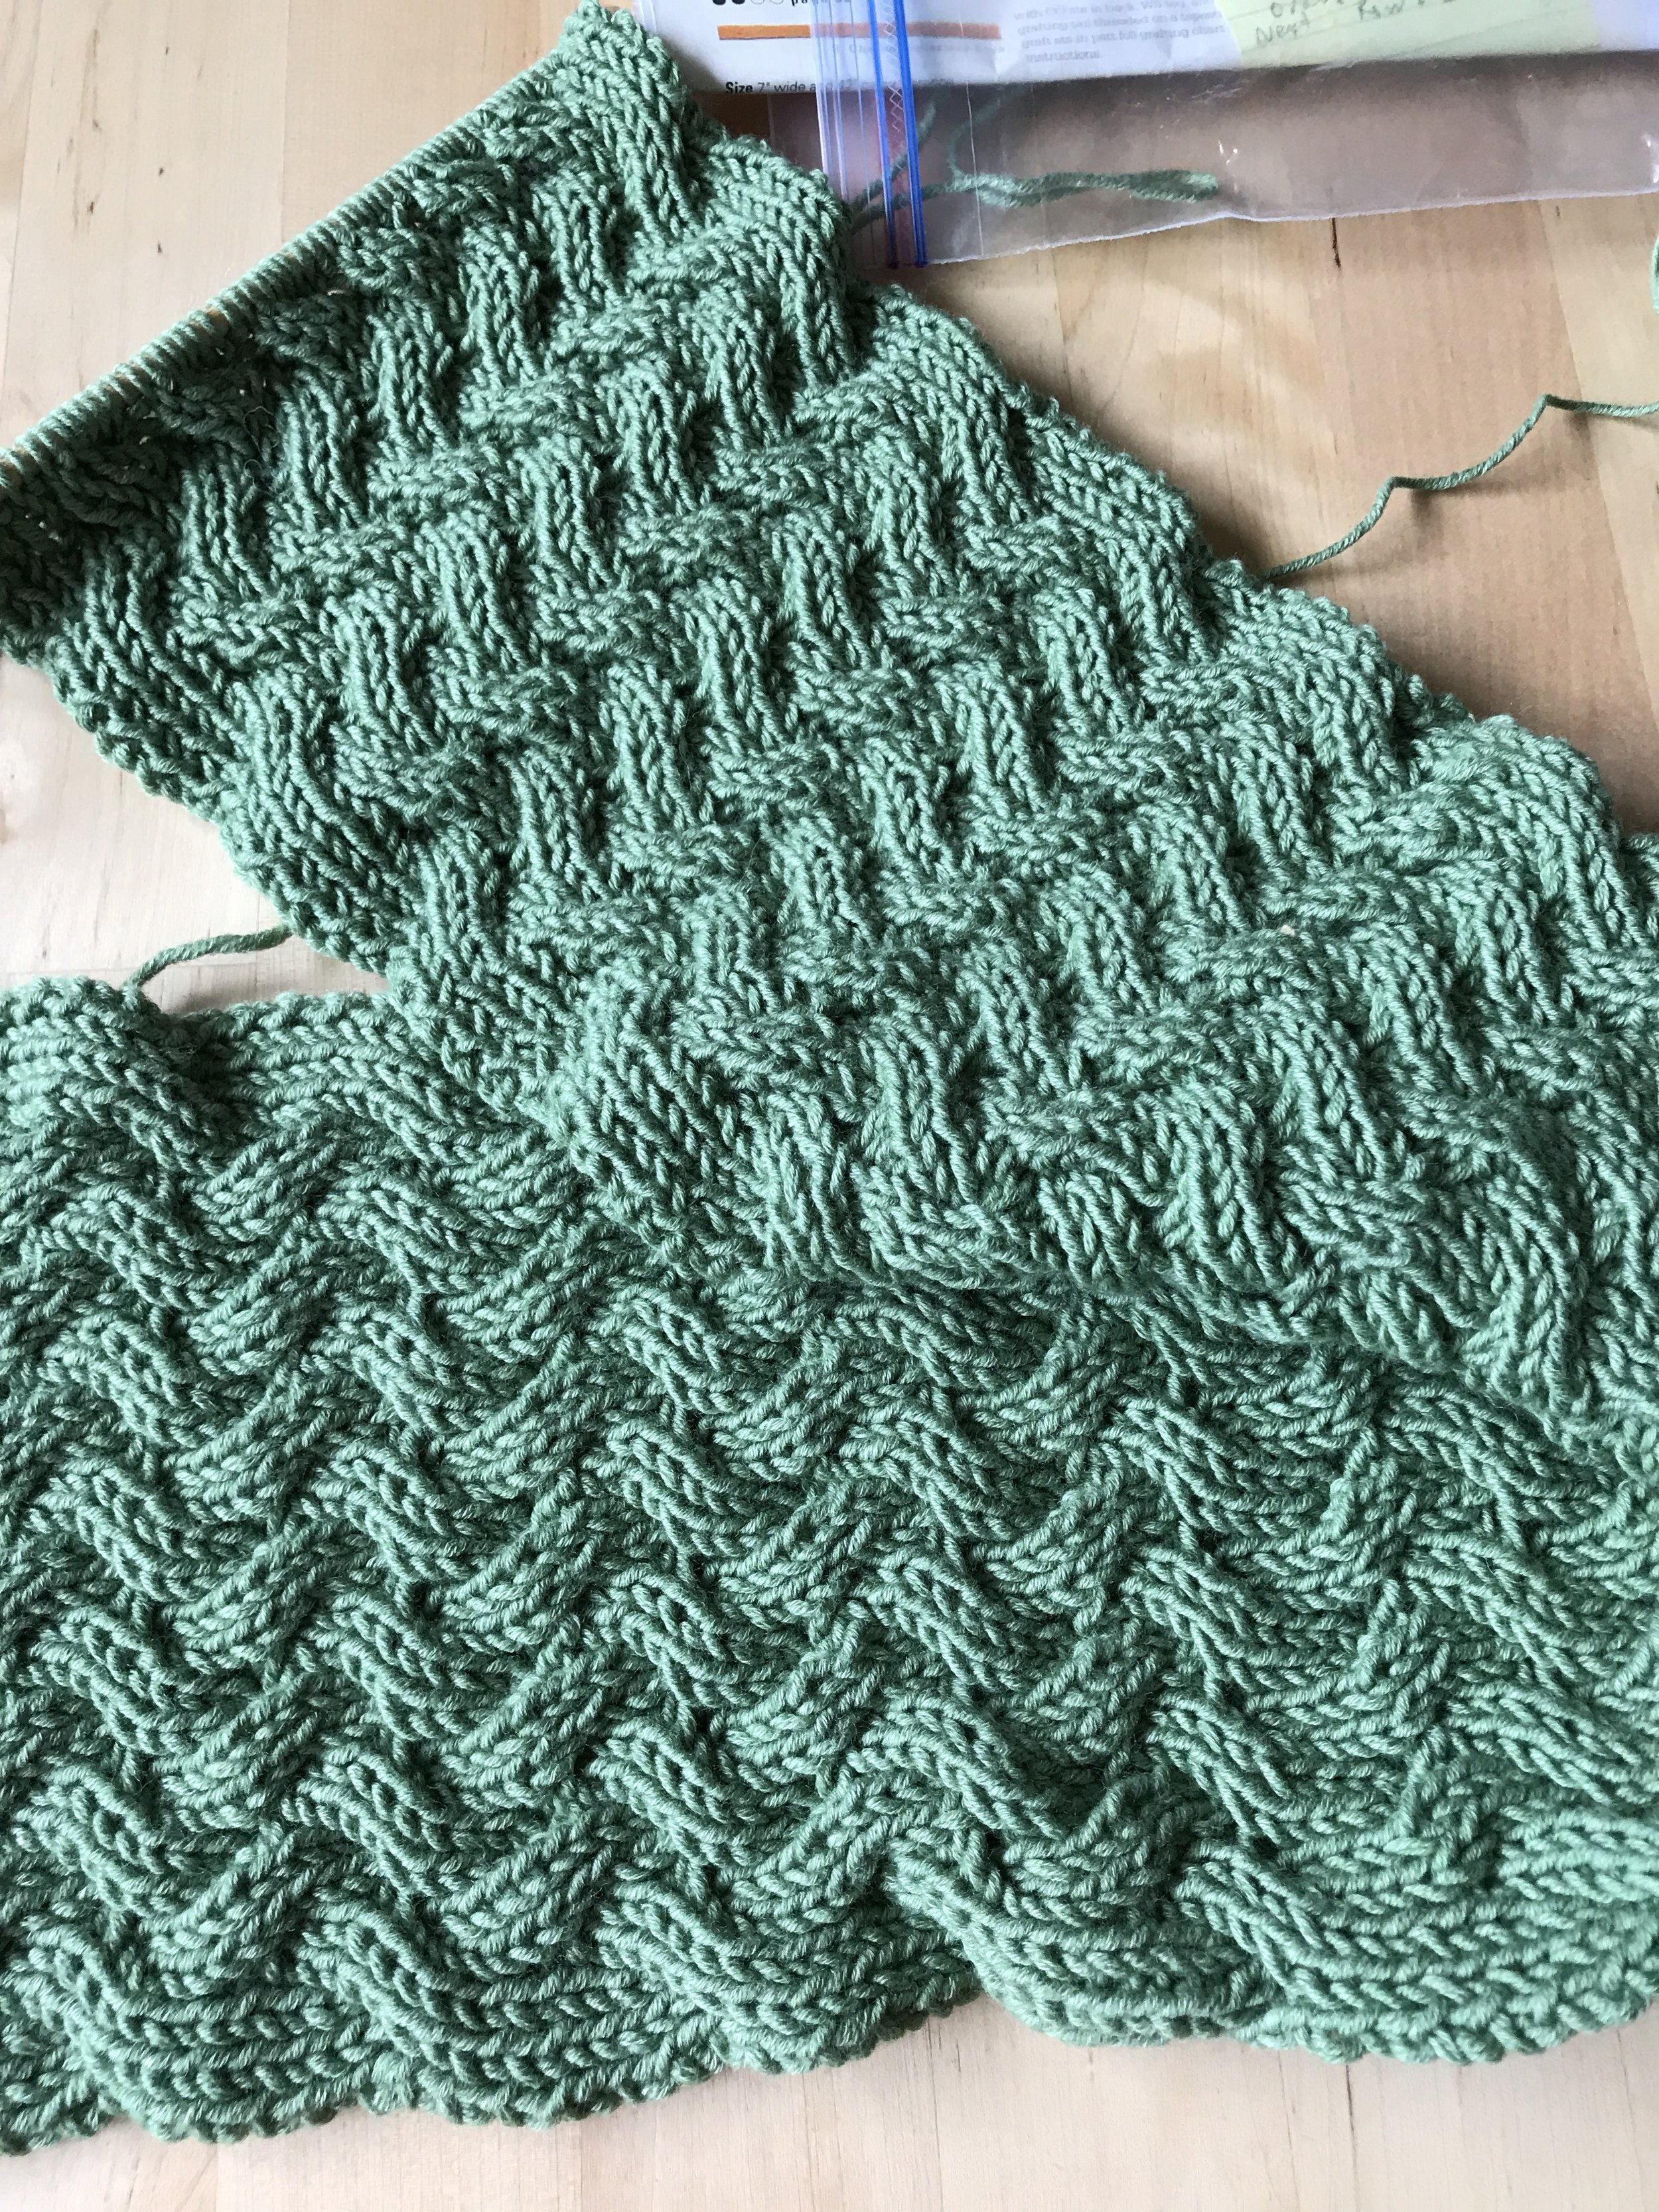 O'Connor Cowl by Harry Wells, GoodforaBoy Designs.